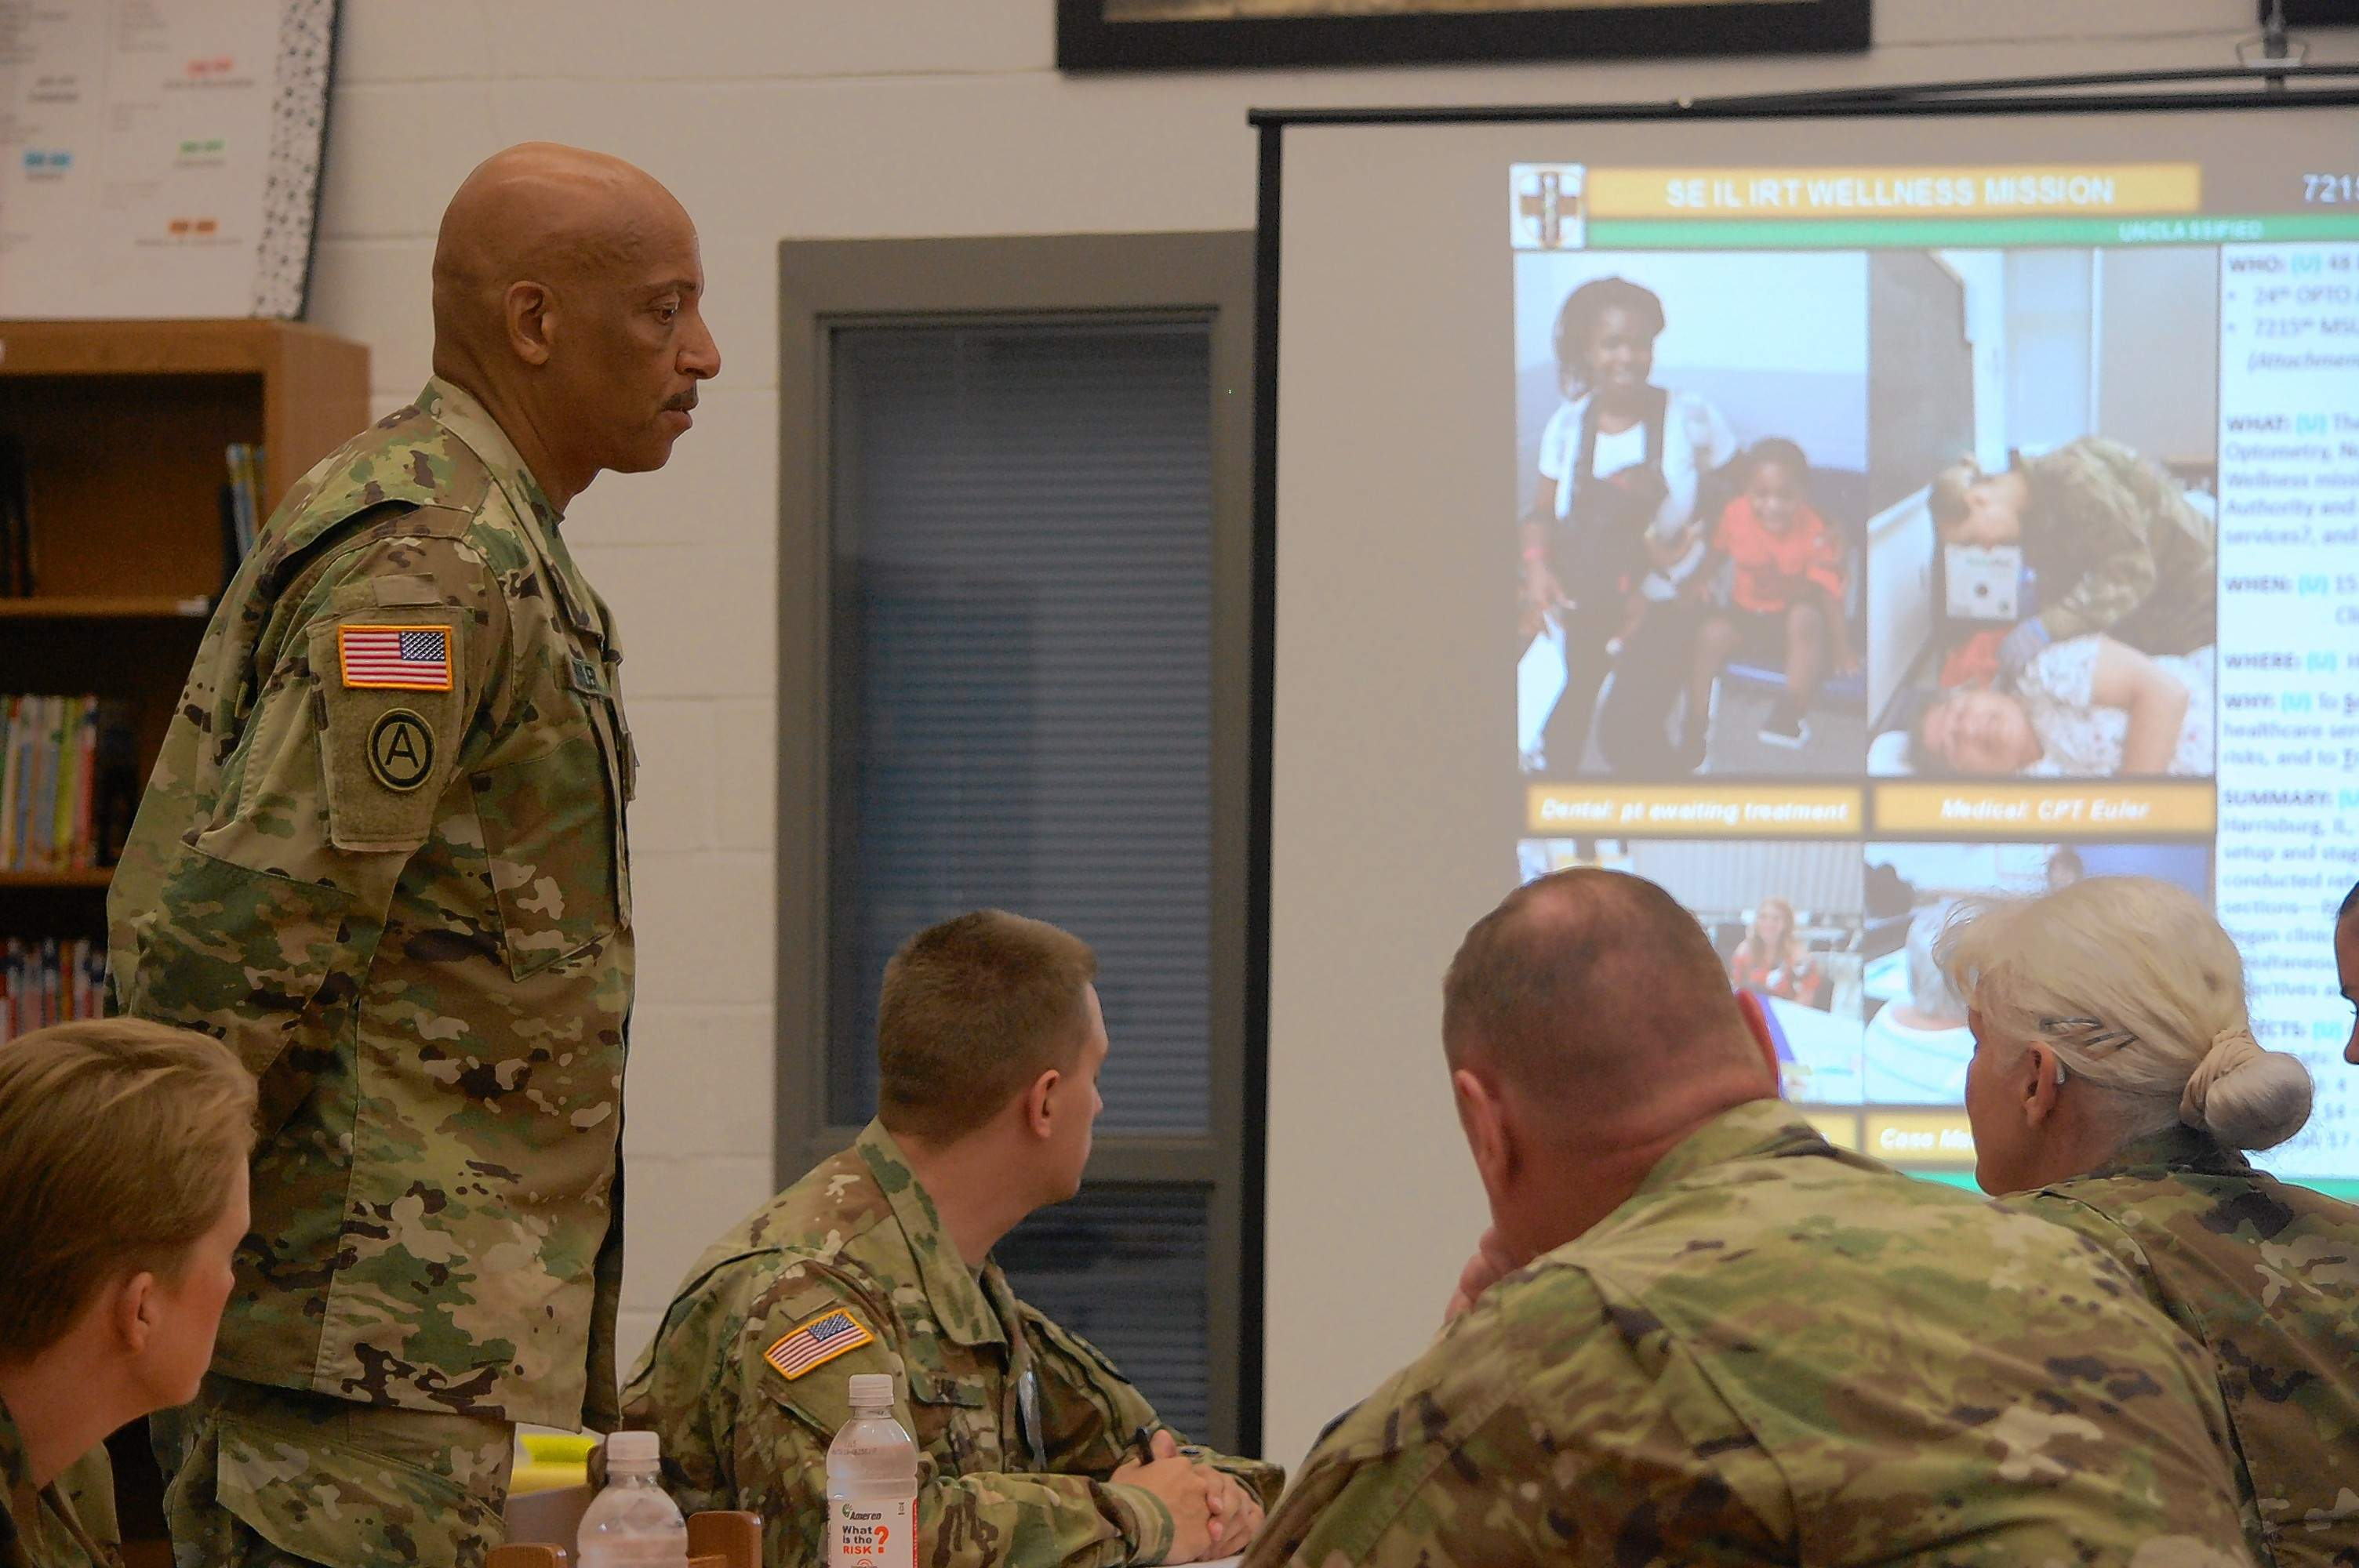 Lt. Col. Milton Fowler, standing, left, observes as service members are briefed on the healthcare screening mission.